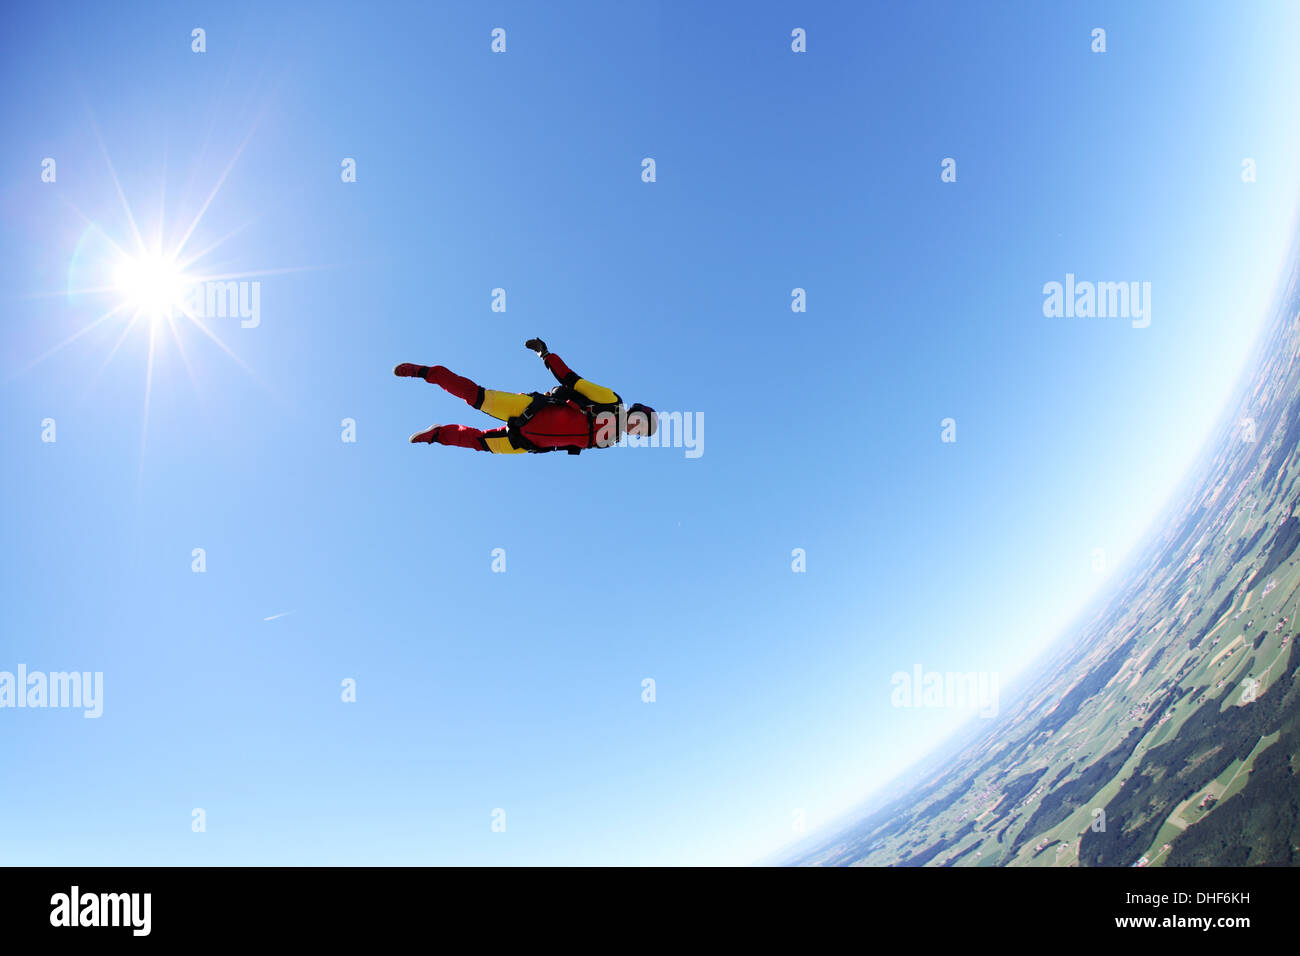 Skydiver free falling face down above Leutkirch, Bavaria, Germany - Stock Image